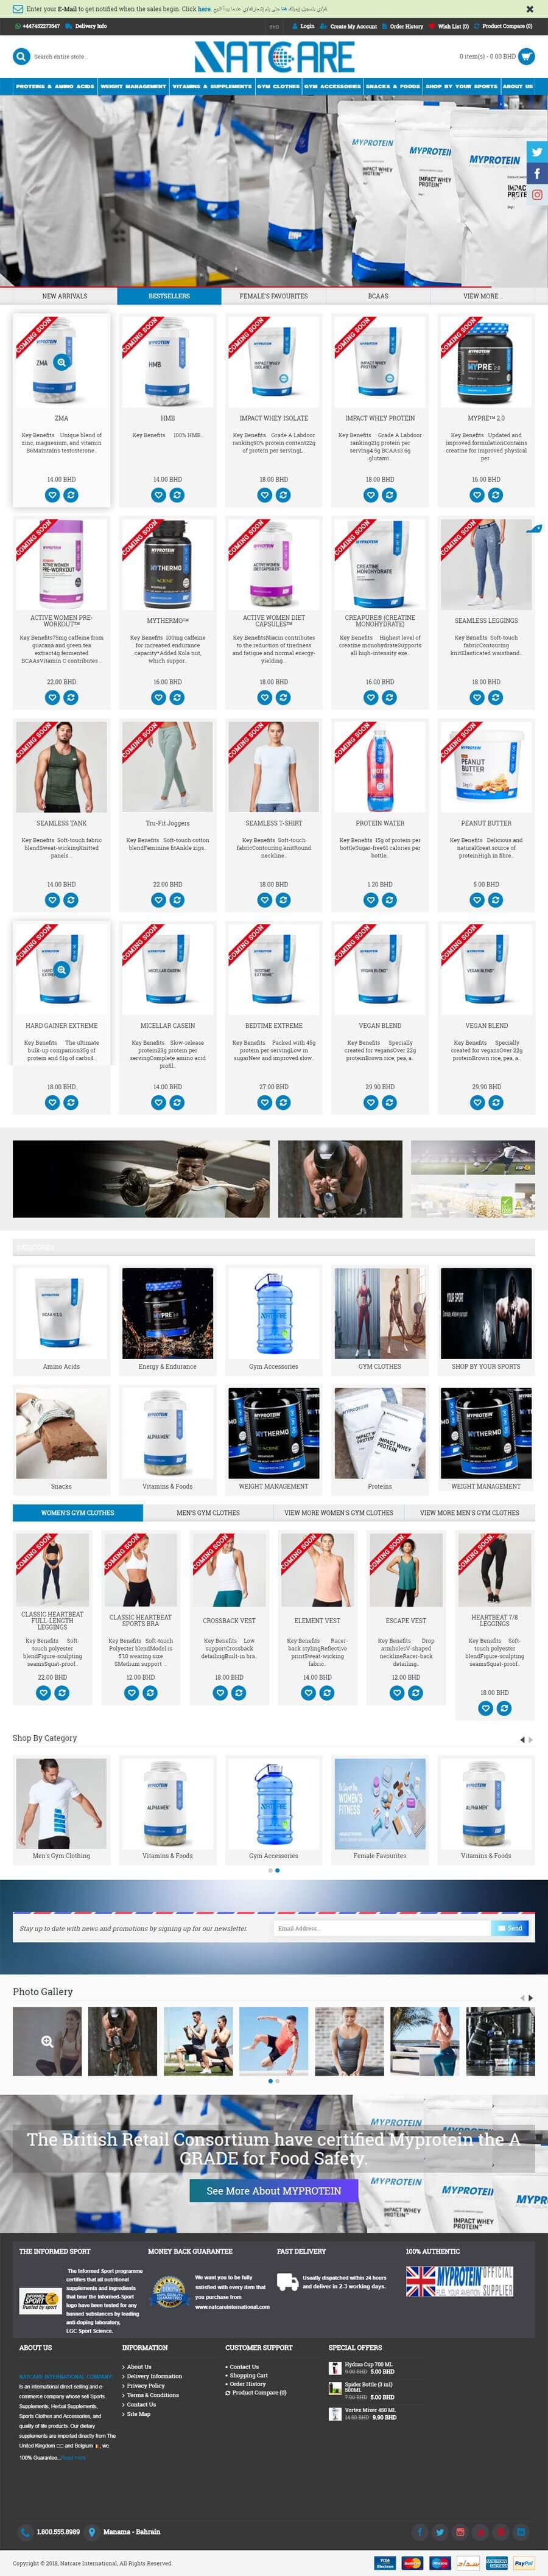 Natcare International Bahrain Web Design